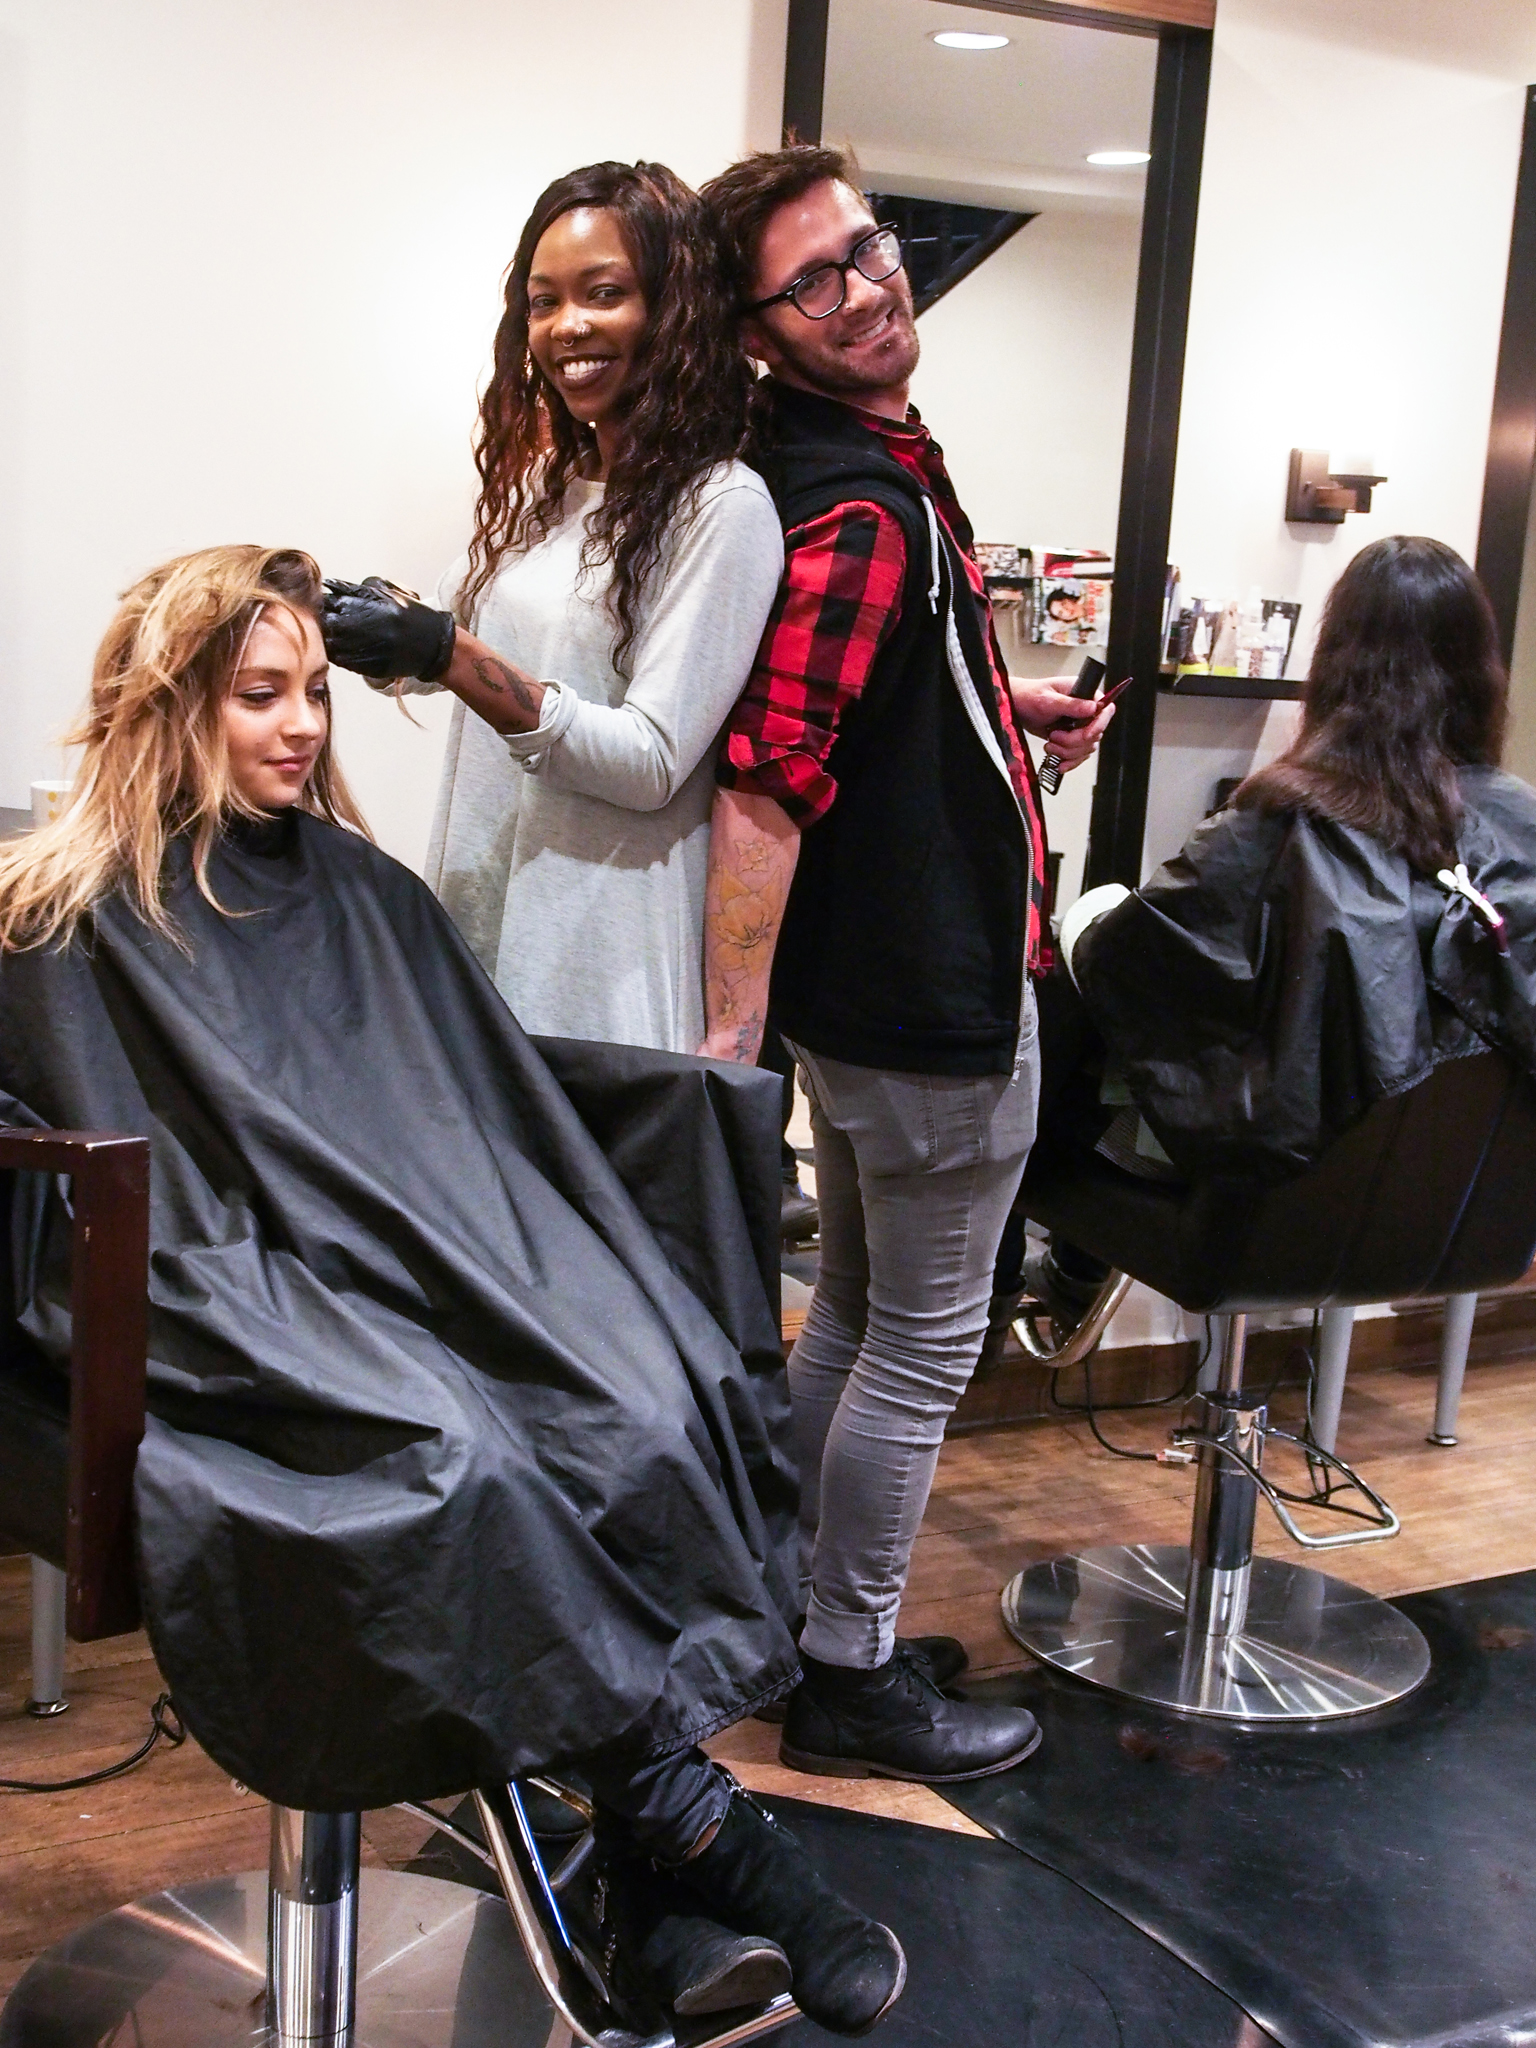 My personal hair stylist,  Lataye Studwood  (left) hard at work on another client with hair-cutting sweetie,  Richie Andrew  (right). Nothing but good vibes in here!